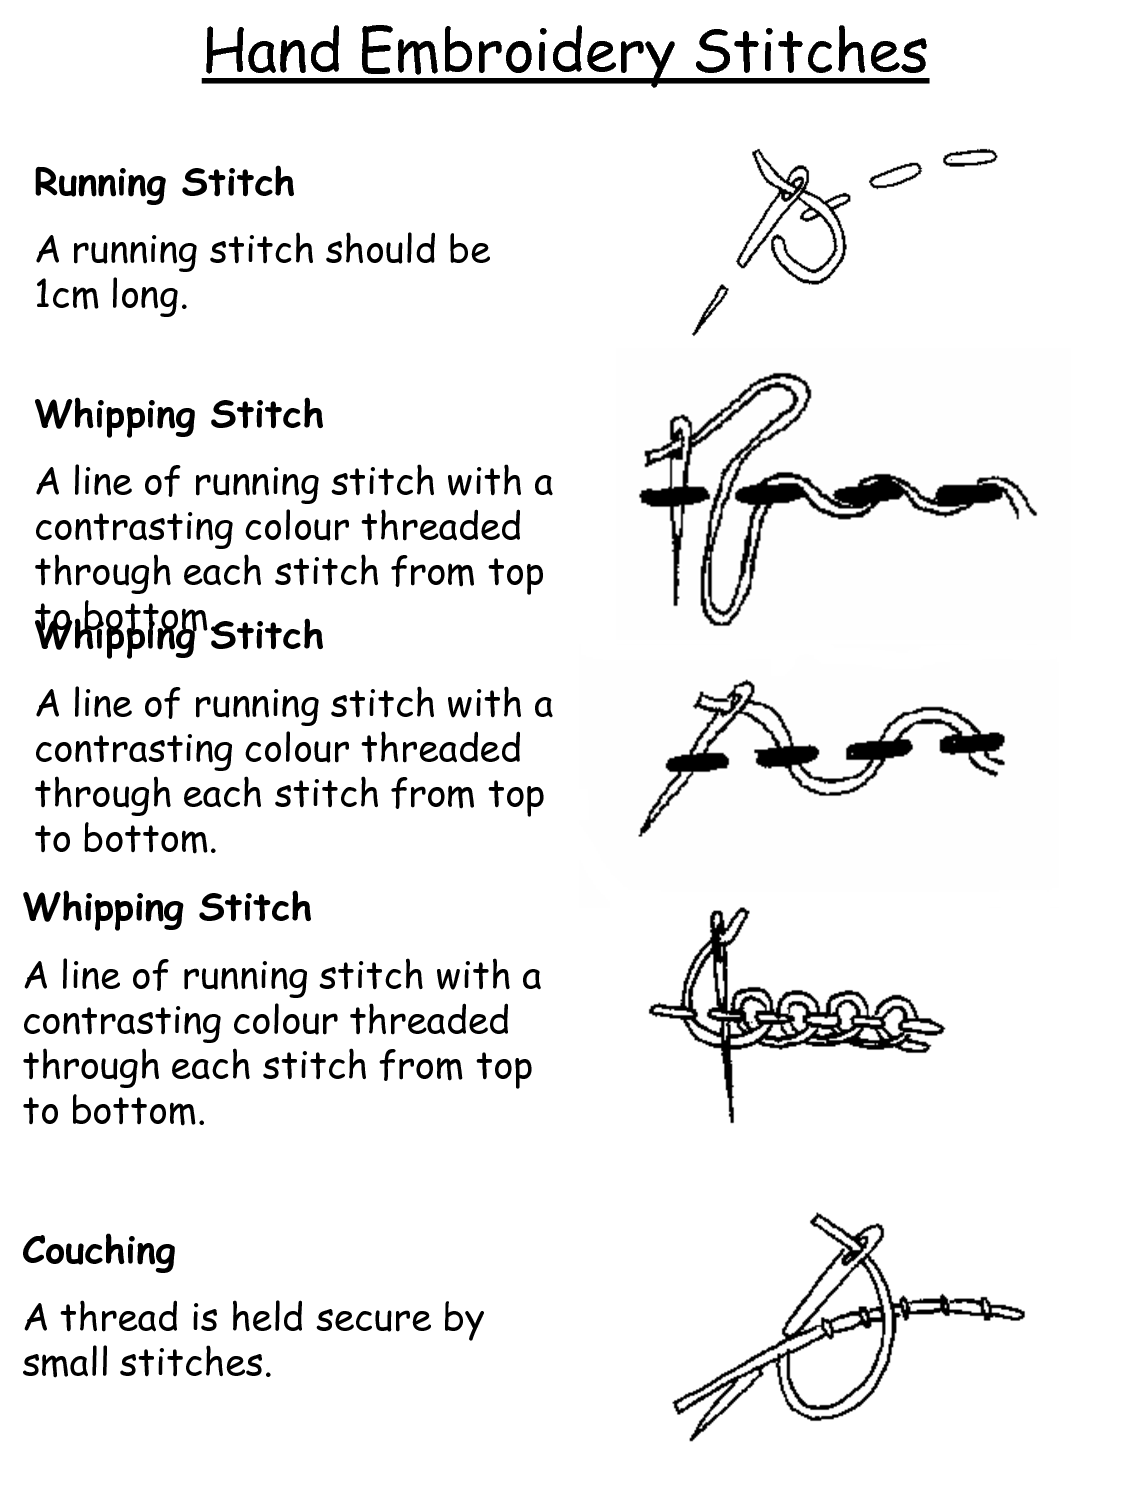 Hand Embroidery Stitch Guide Repinned By Lazydaisytotes